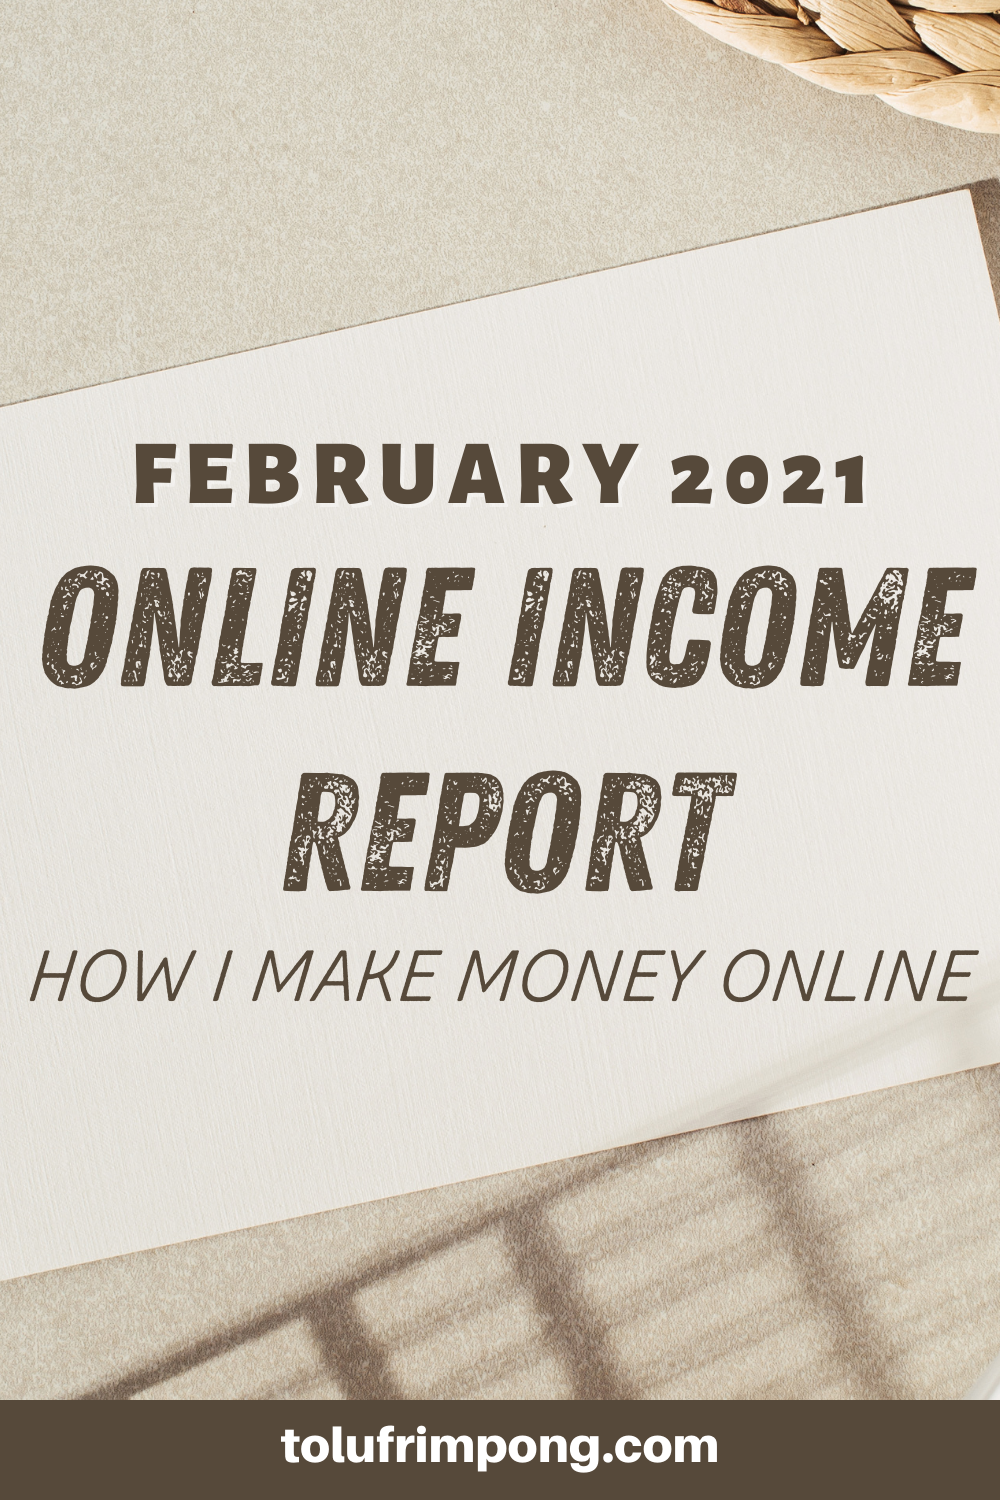 FEBRUARY 2021 ONLINE INCOME REPORT HOW I MAKE MONEY ONLINE